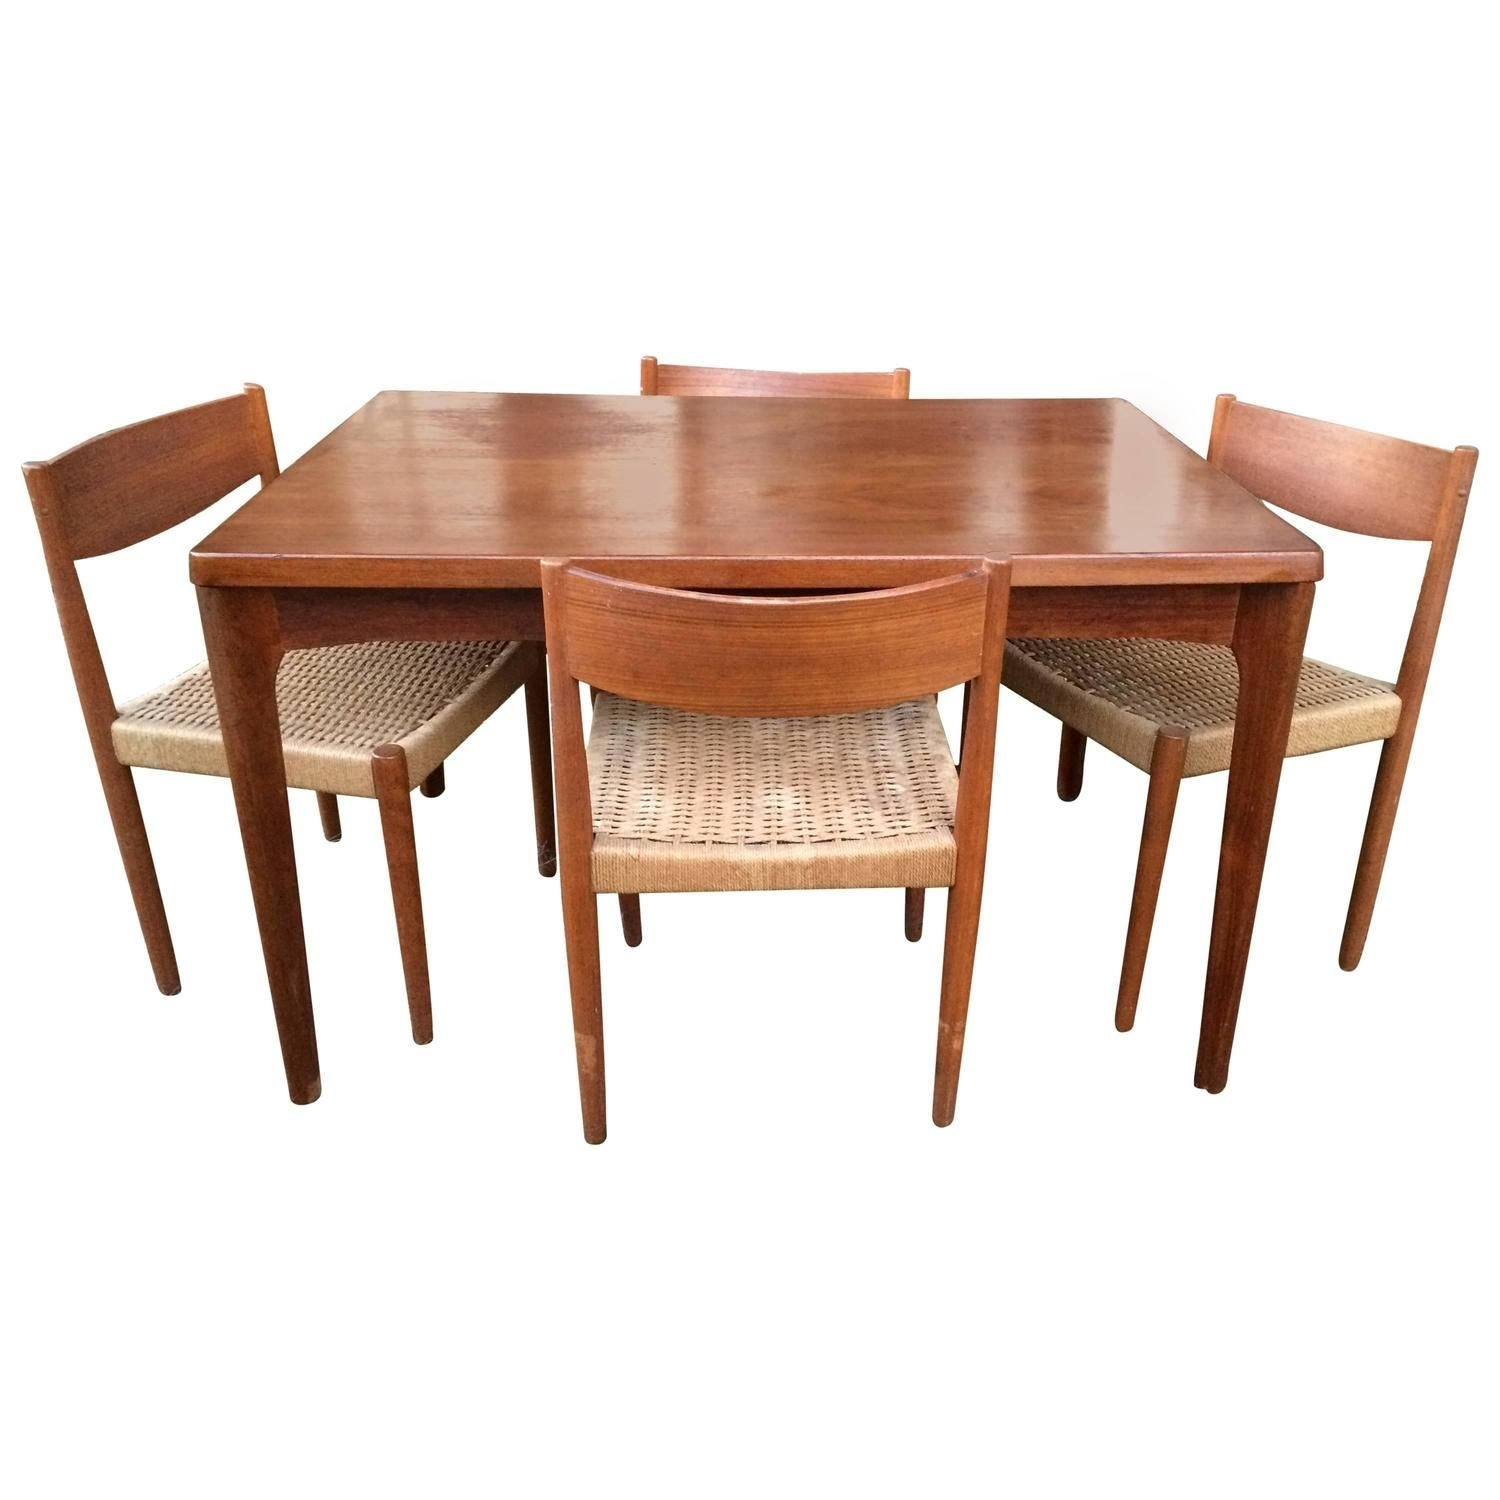 Danish Modern Extendable Teak Dining Table With Woven Chairs With Regard To Latest Helms 5 Piece Round Dining Sets With Side Chairs (Image 5 of 20)